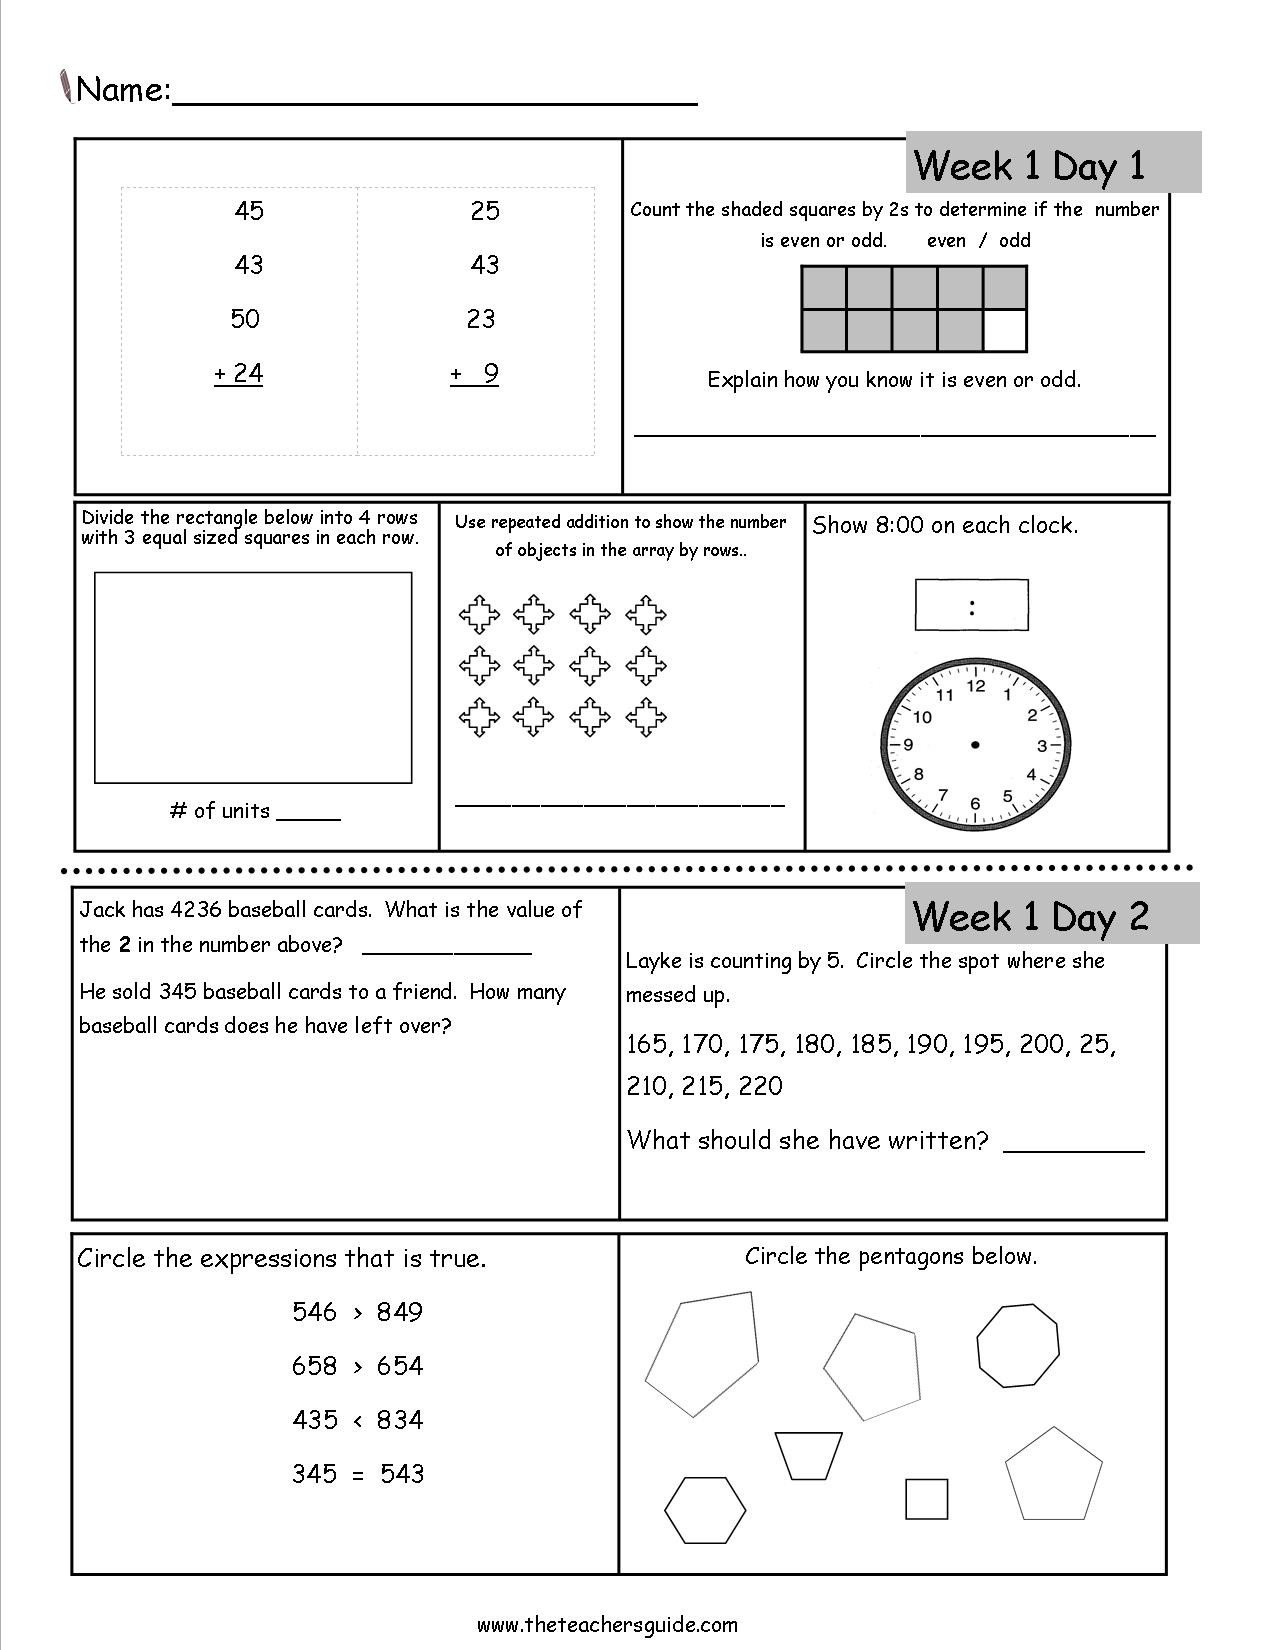 Skip Counting Worksheets 3rd Grade Free 3rd Grade Daily Math Worksheets Dailymath3rd Homework